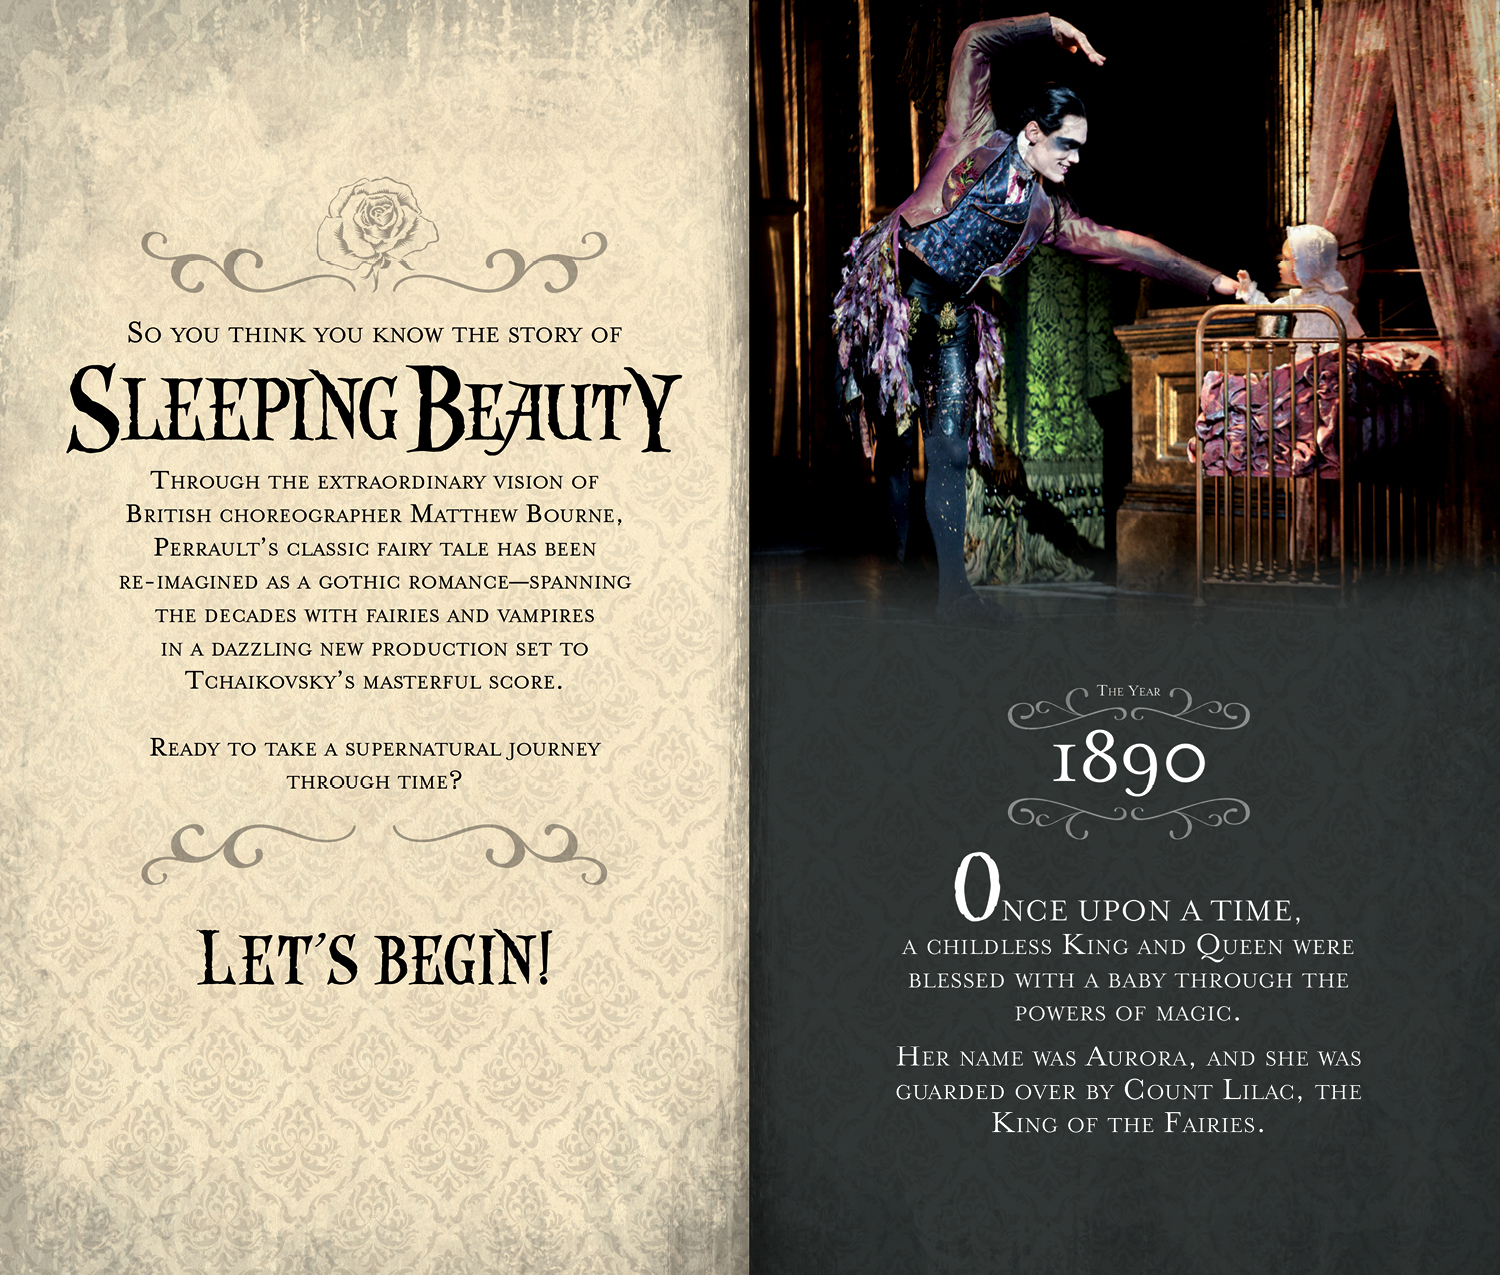 MatthewBourne-SleepingBeauty2.jpg